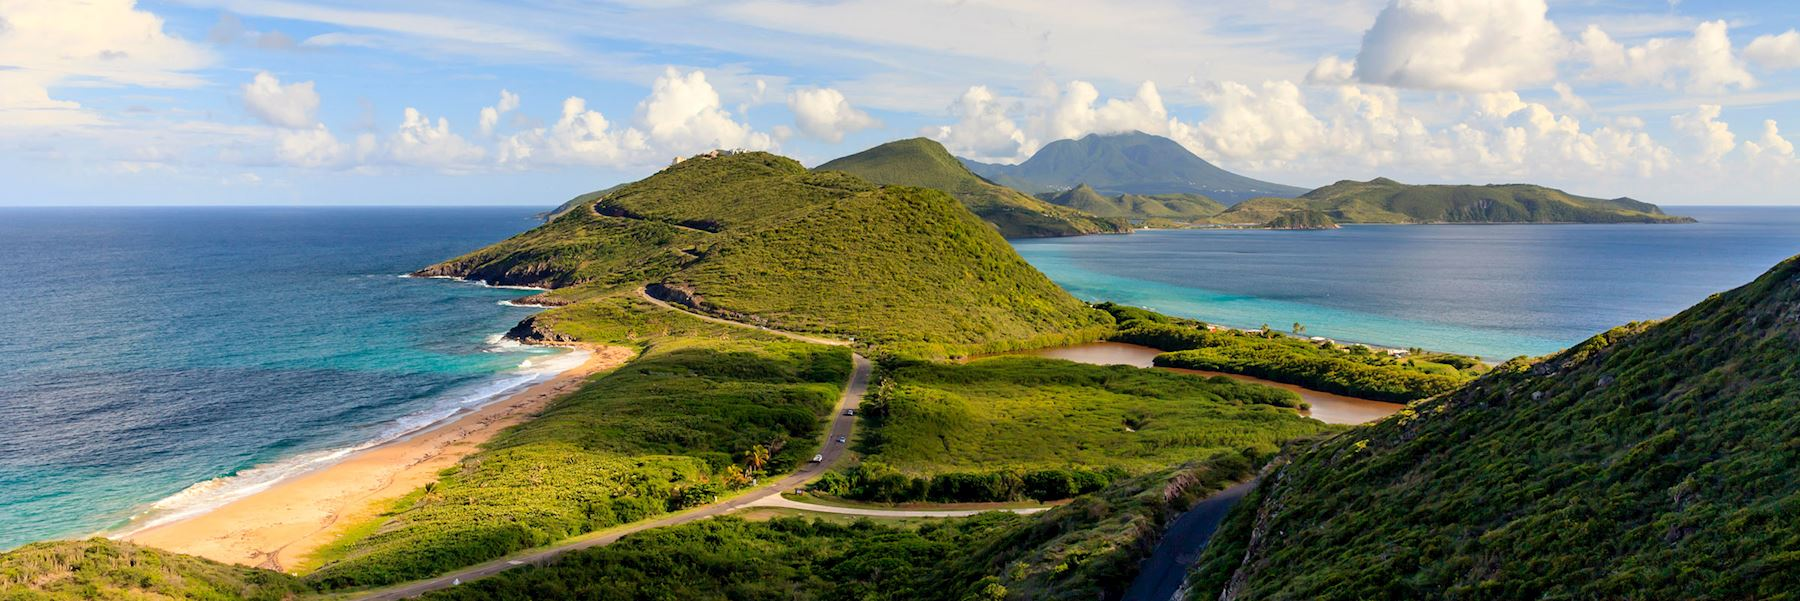 Saint Kitts and Nevis holidays  2019 & 2020